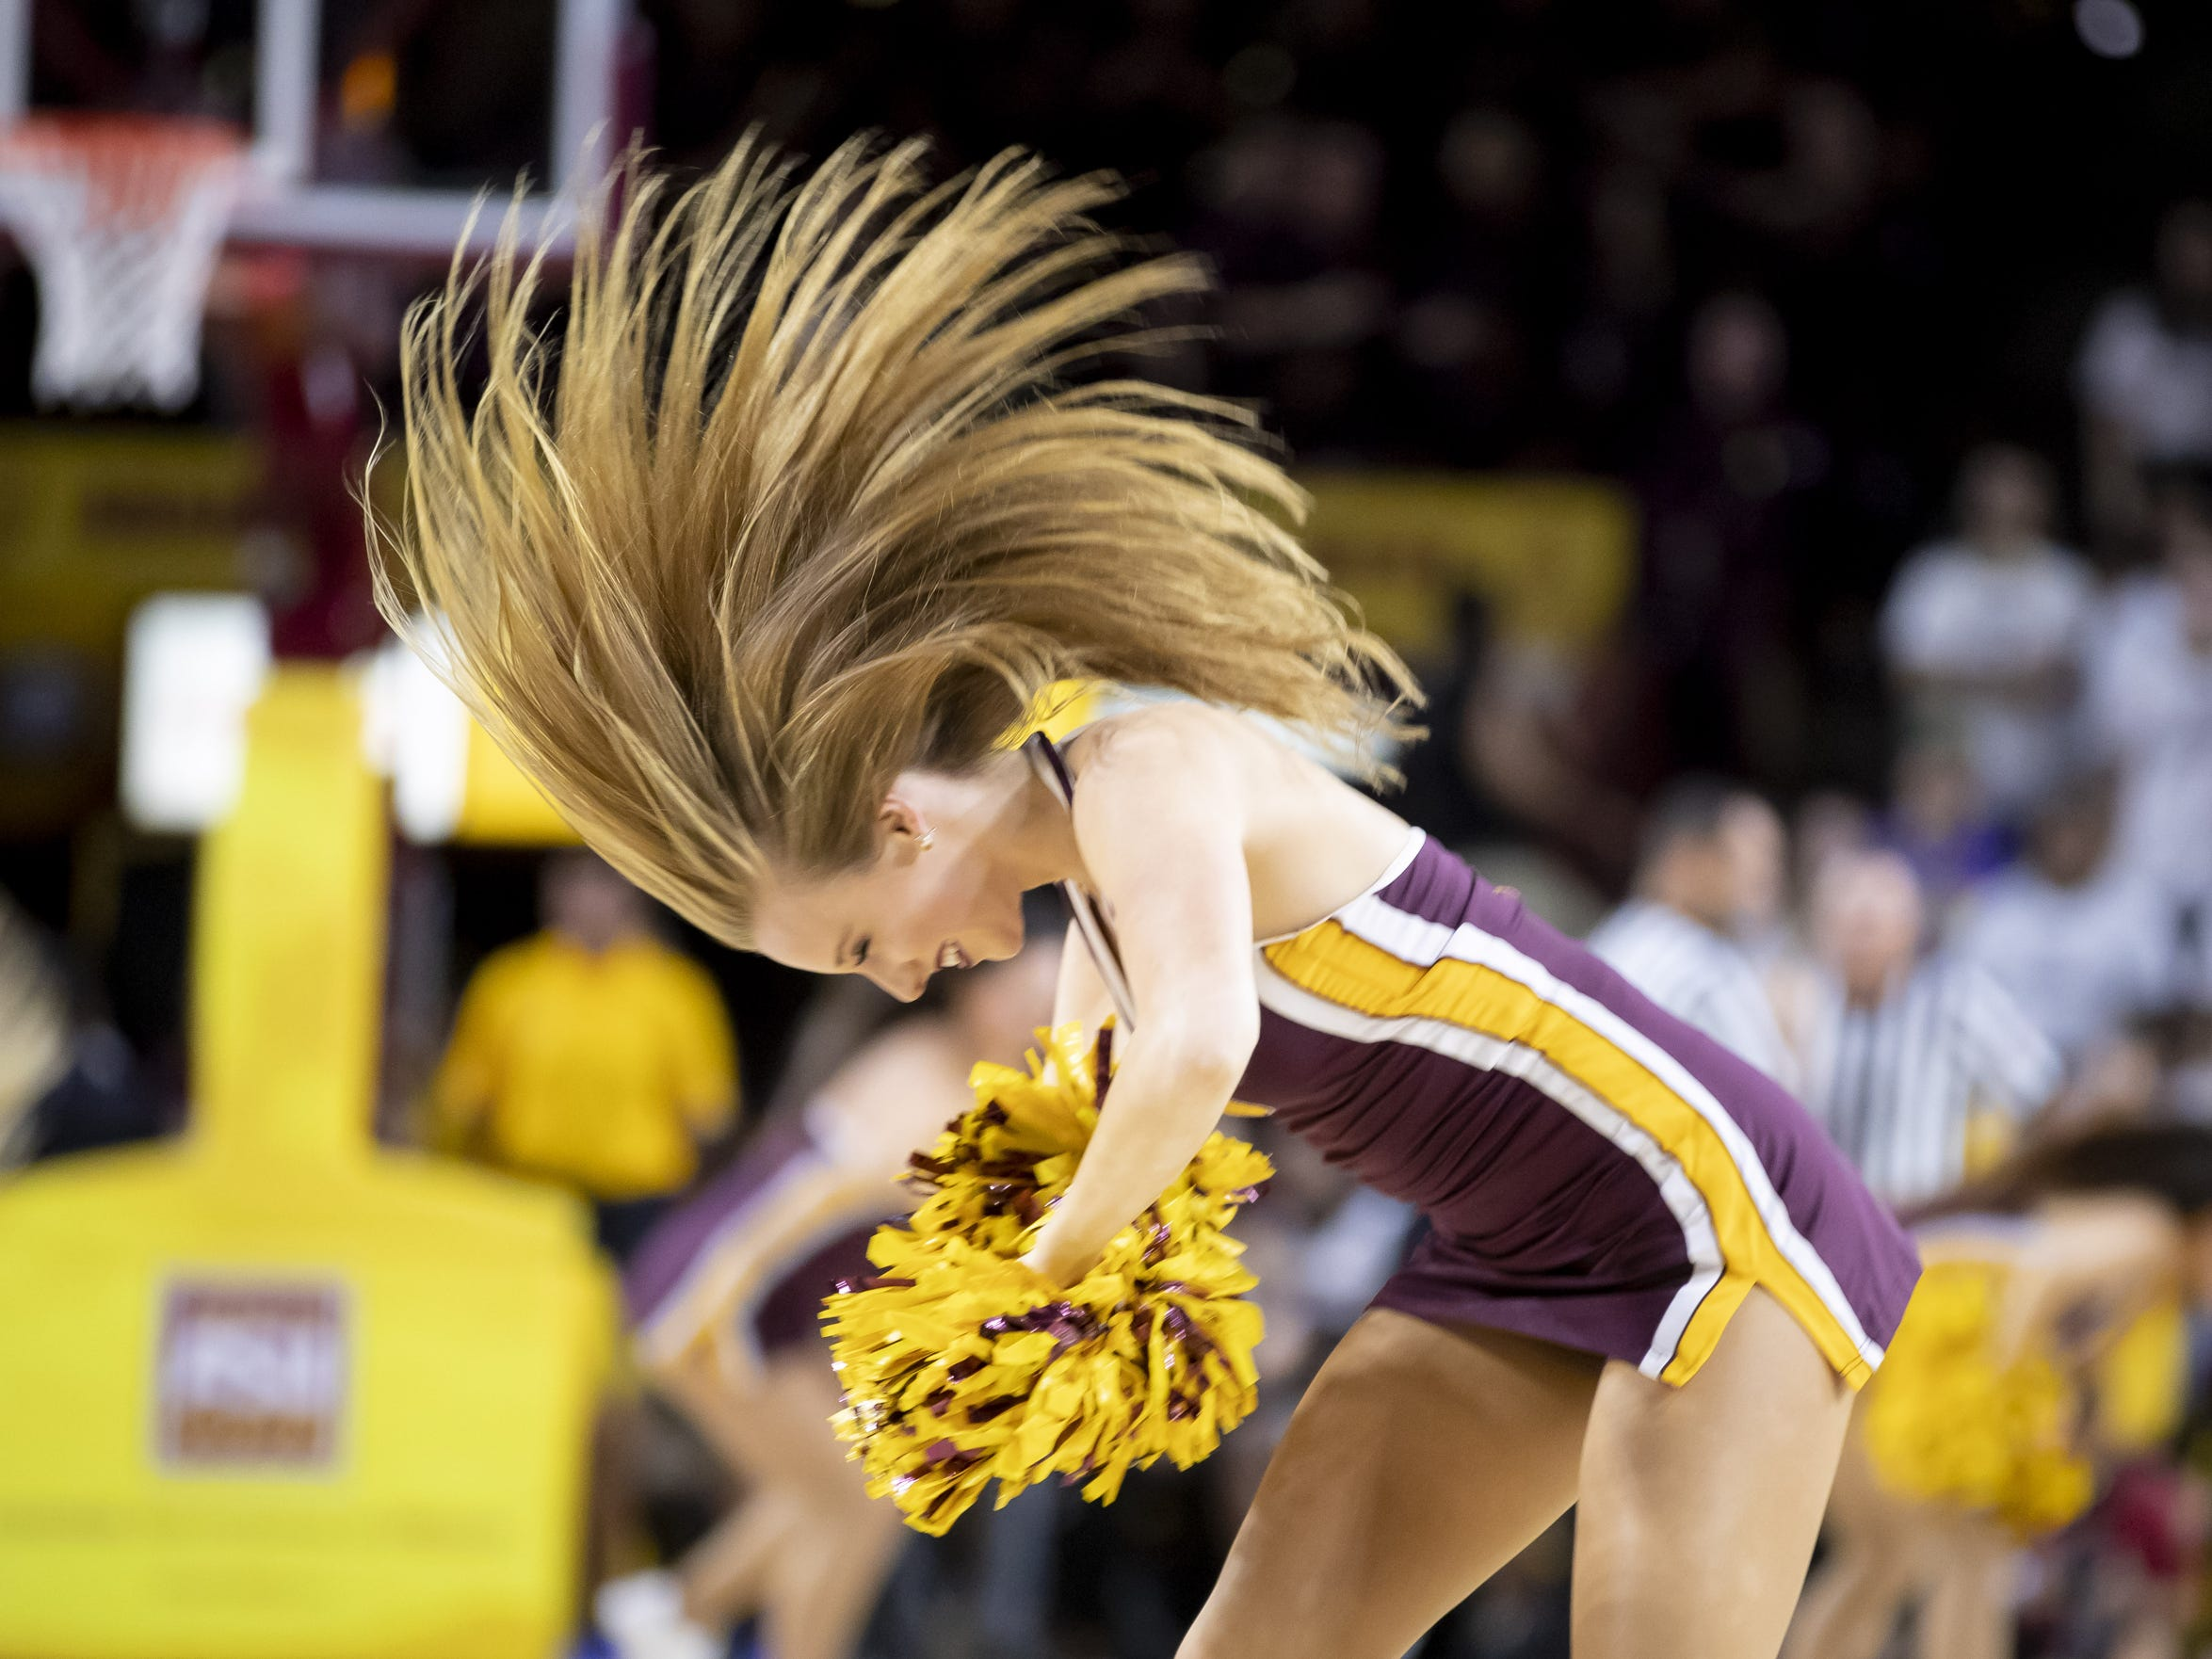 An Arizona State Sun Devil cheerleader flips her hair during the game against the Cal State Fullerton Titans at Wells Fargo Arena on Tuesday, November 6, 2018 in Tempe, Arizona.